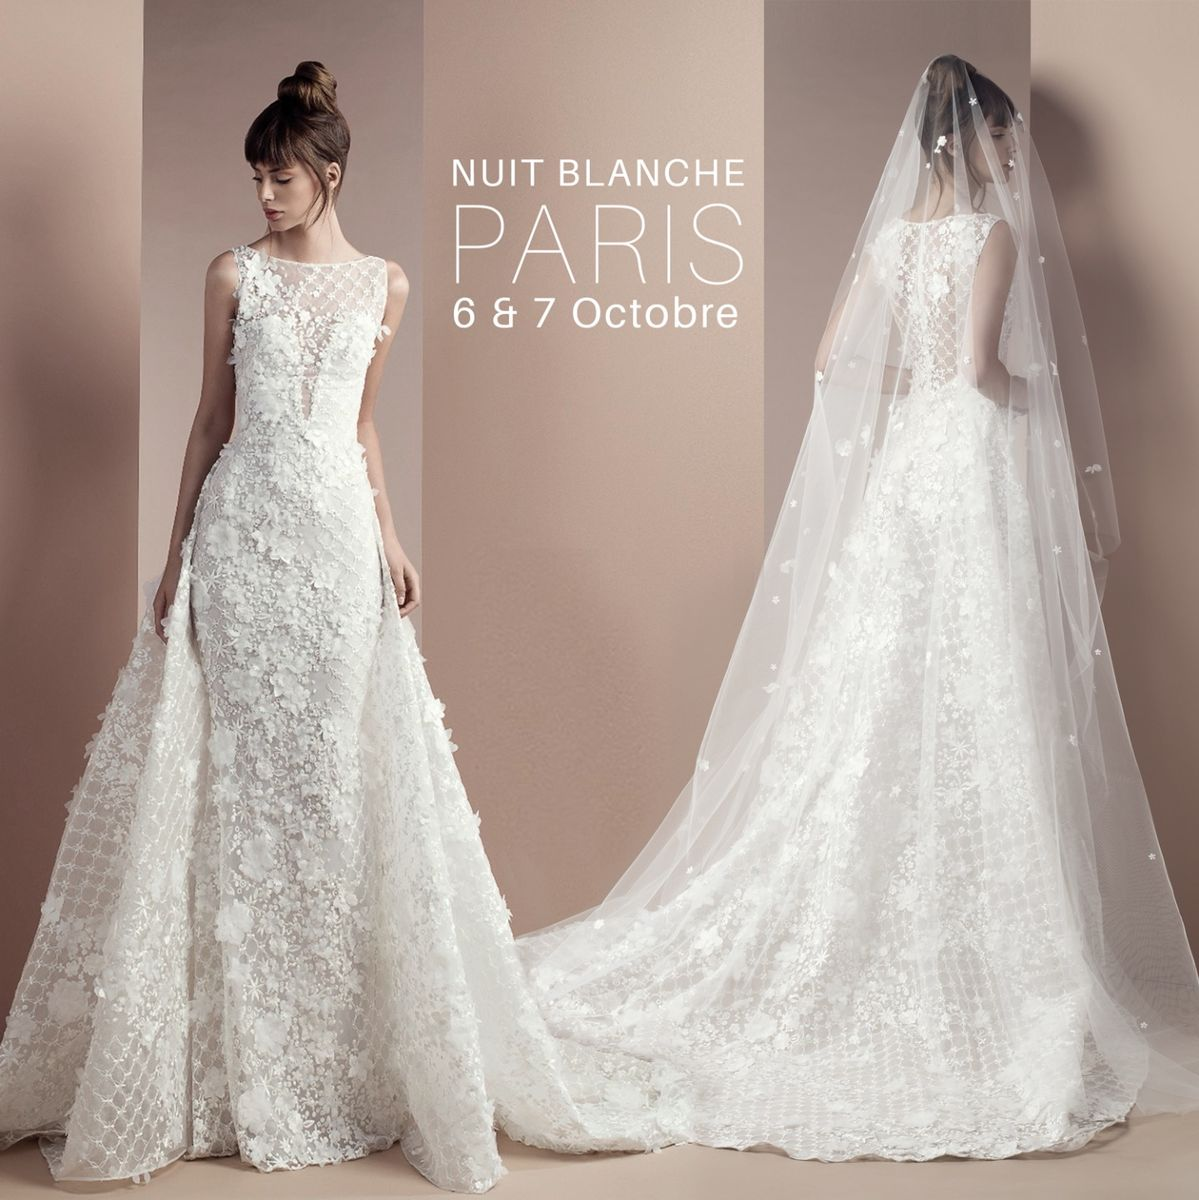 Tony Ward La Mariée Fall 2018 Wedding Dresses: Trunkshow At Nuit Blanche, Paris